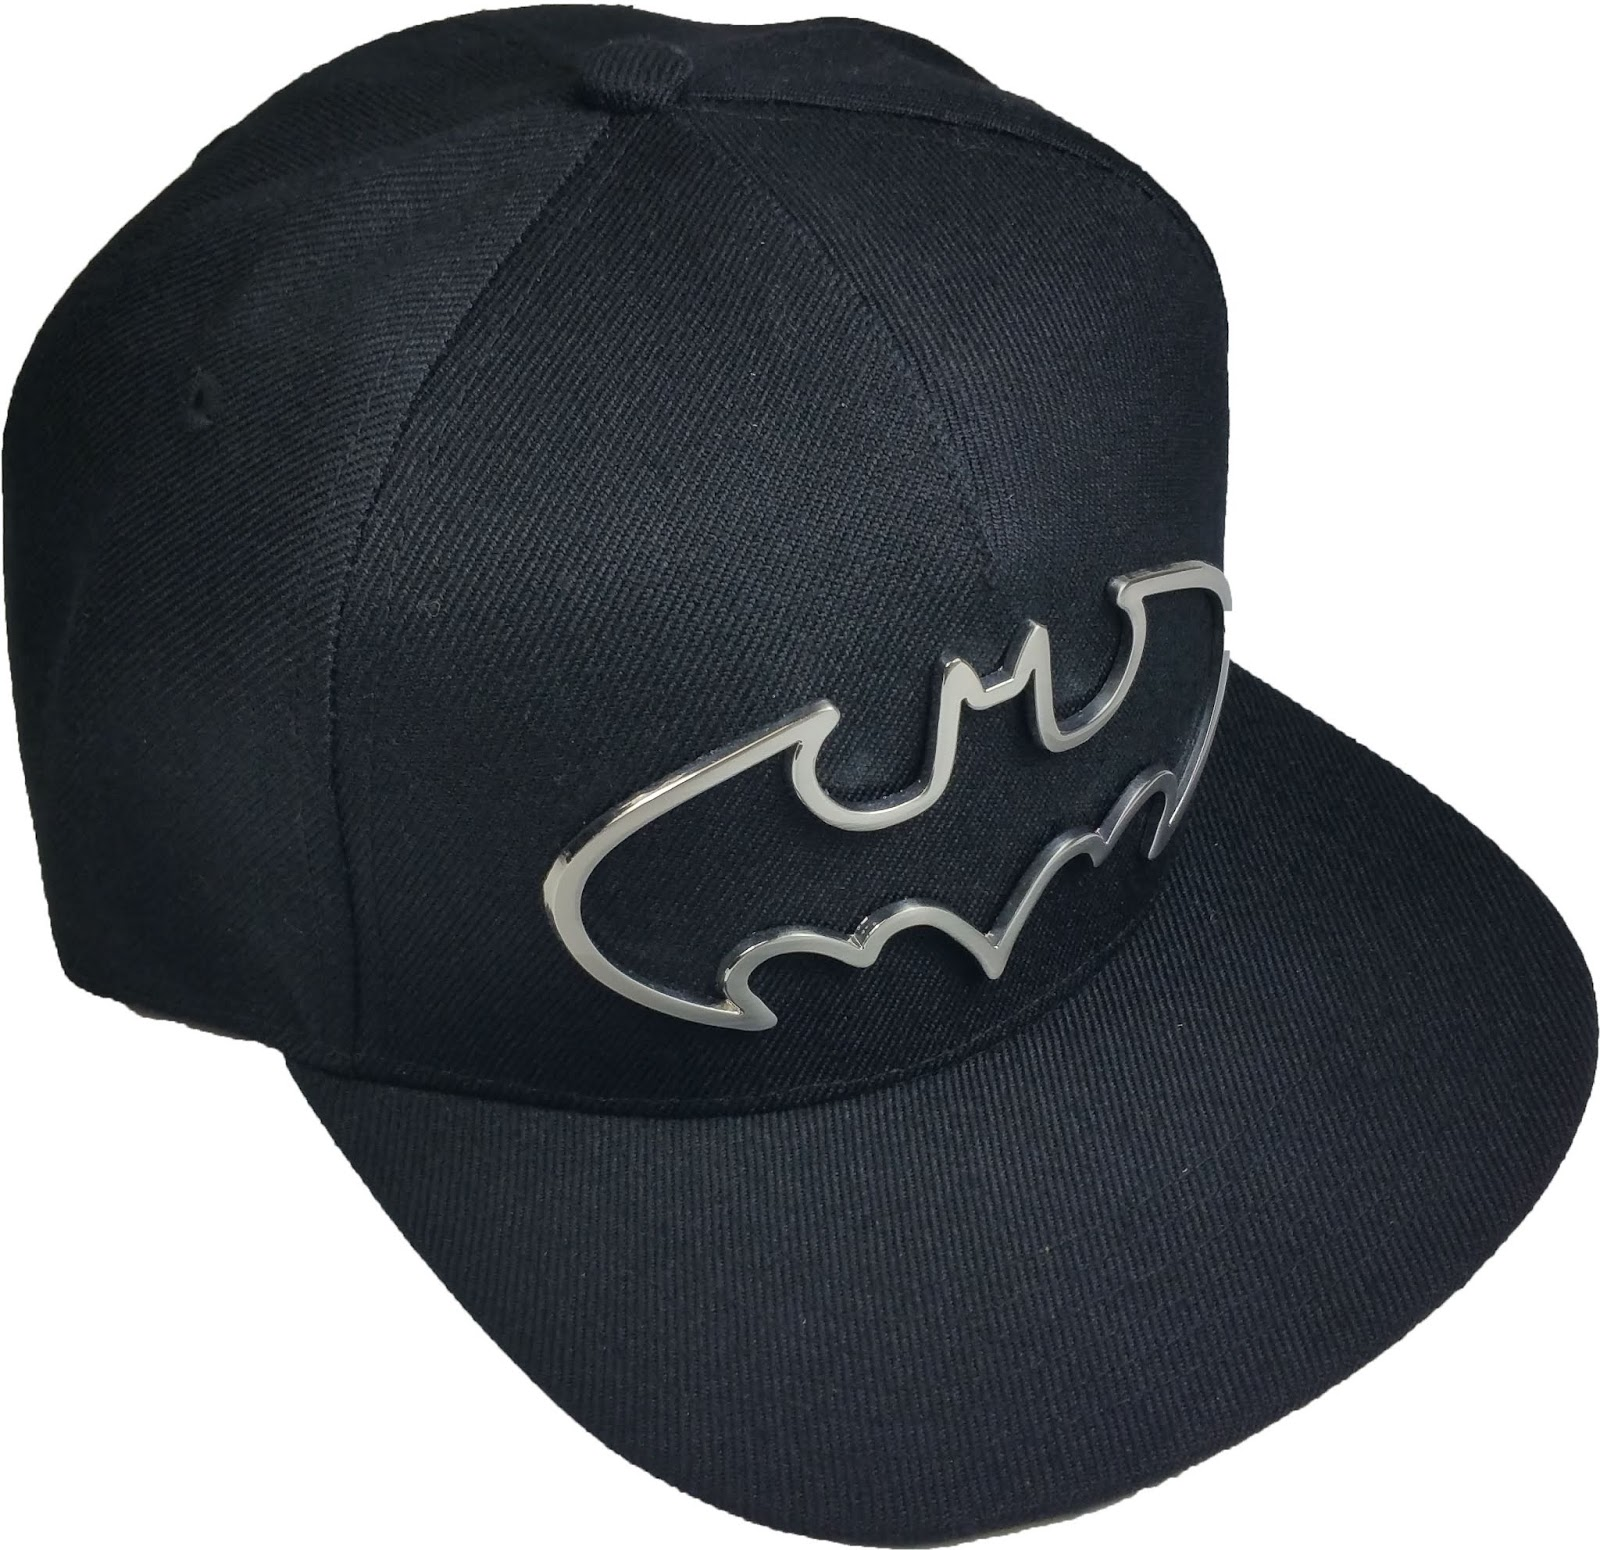 ff6a9f715 $4.19 Batman Baseball Cap with Metal Logo at Walmart (regularly ...